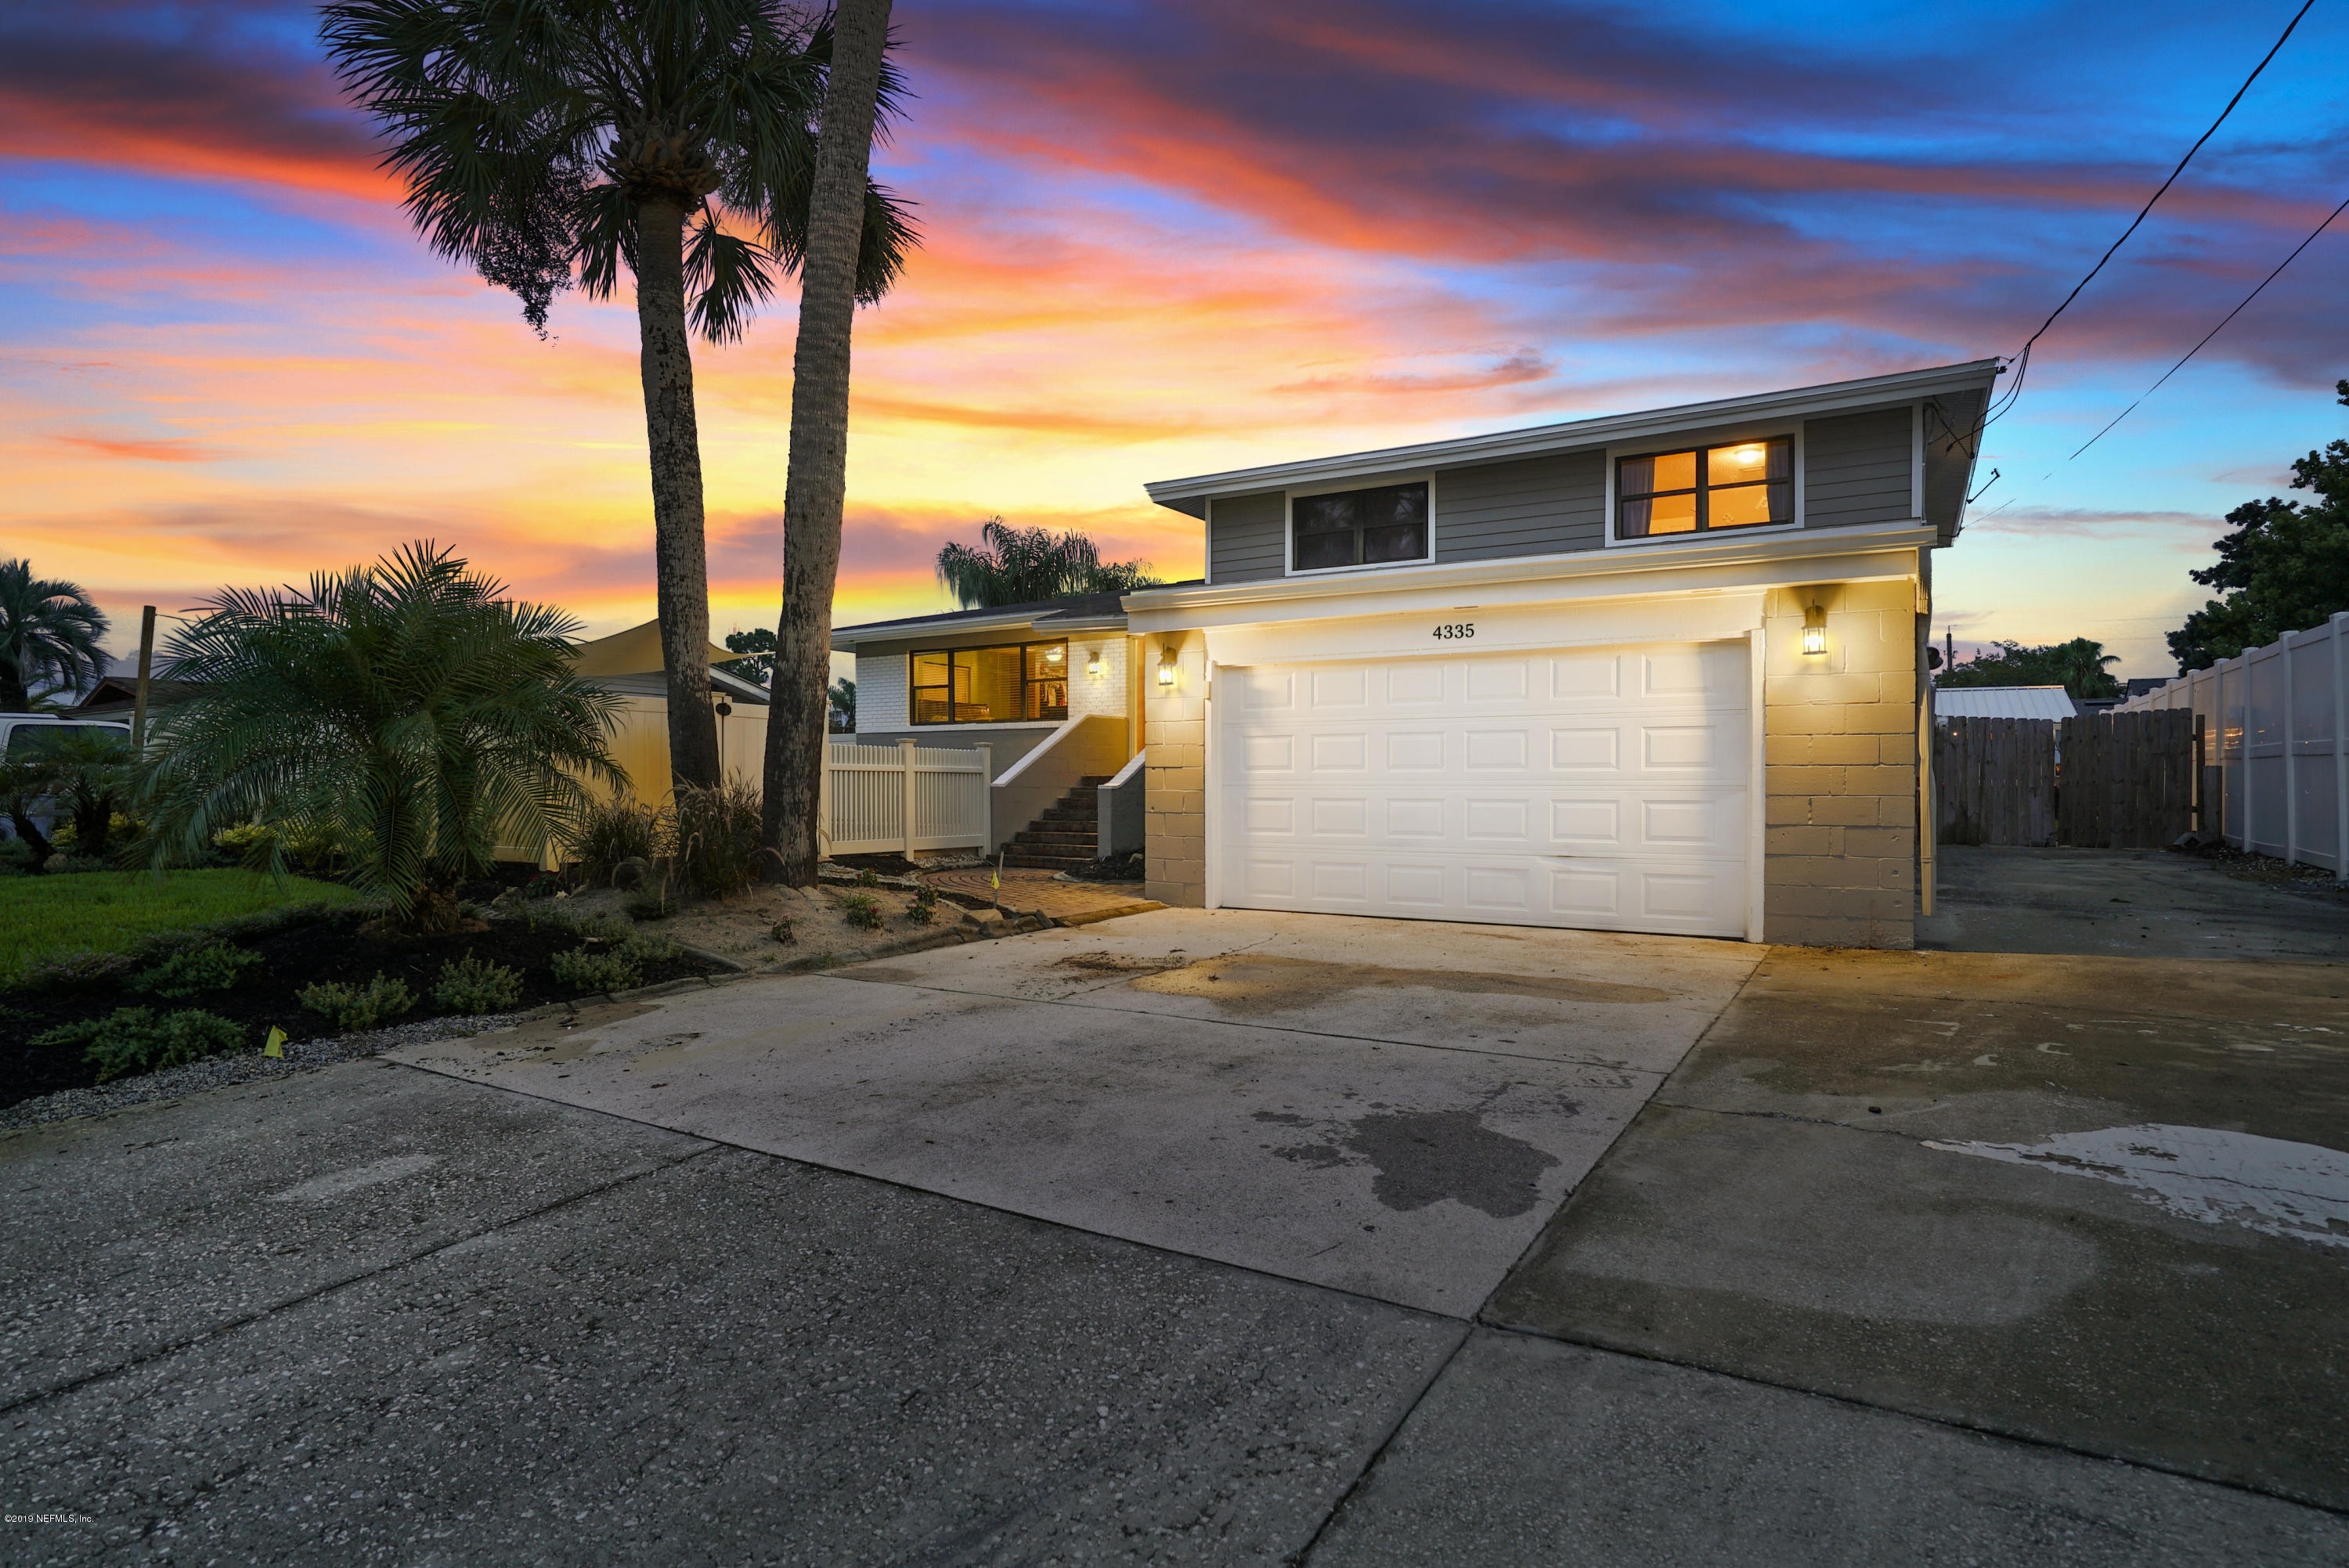 4335 COQUINA, JACKSONVILLE BEACH, FLORIDA 32250, 4 Bedrooms Bedrooms, ,4 BathroomsBathrooms,Residential - single family,For sale,COQUINA,1007962